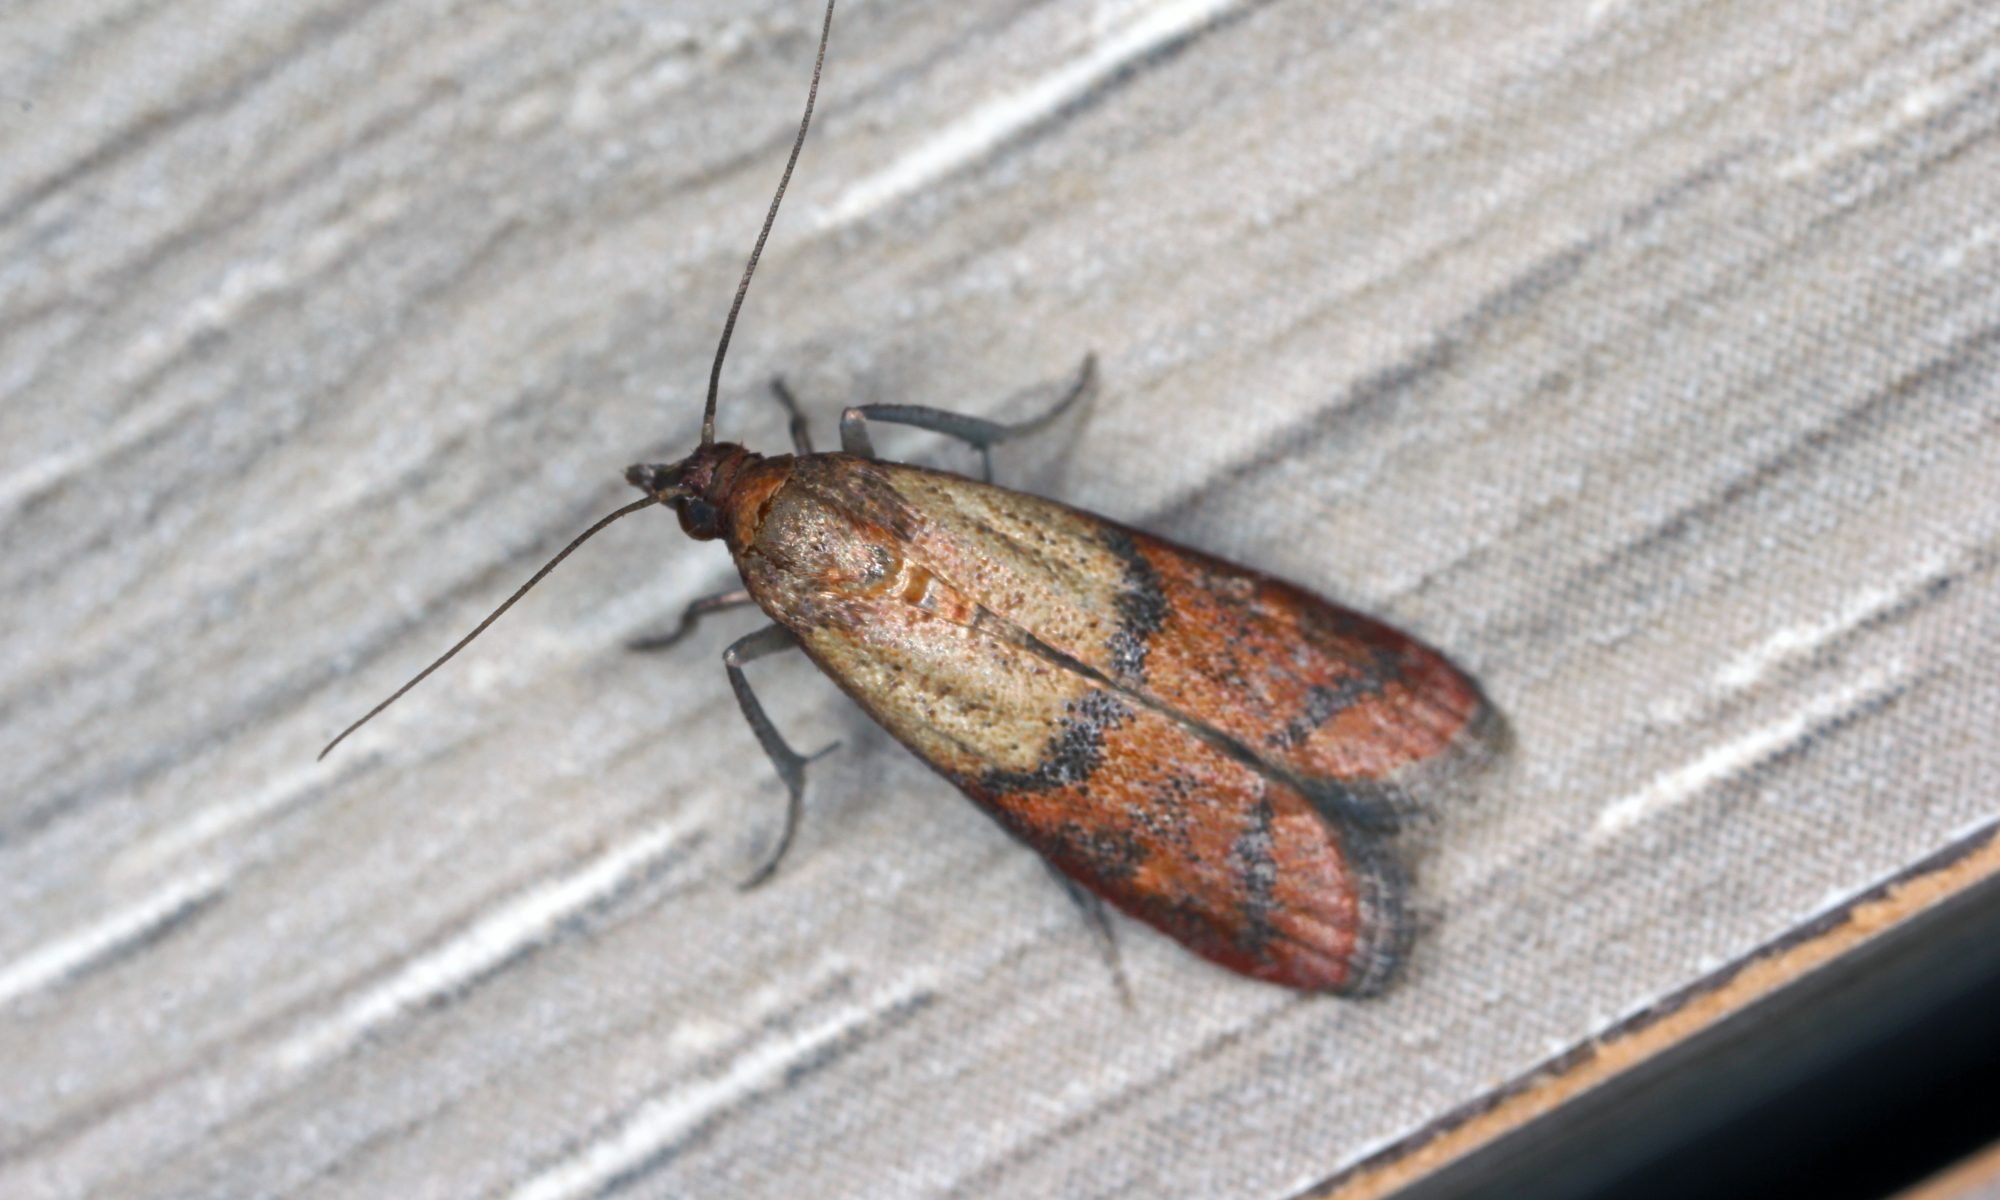 Indian Meal Moth - a common pantry pest